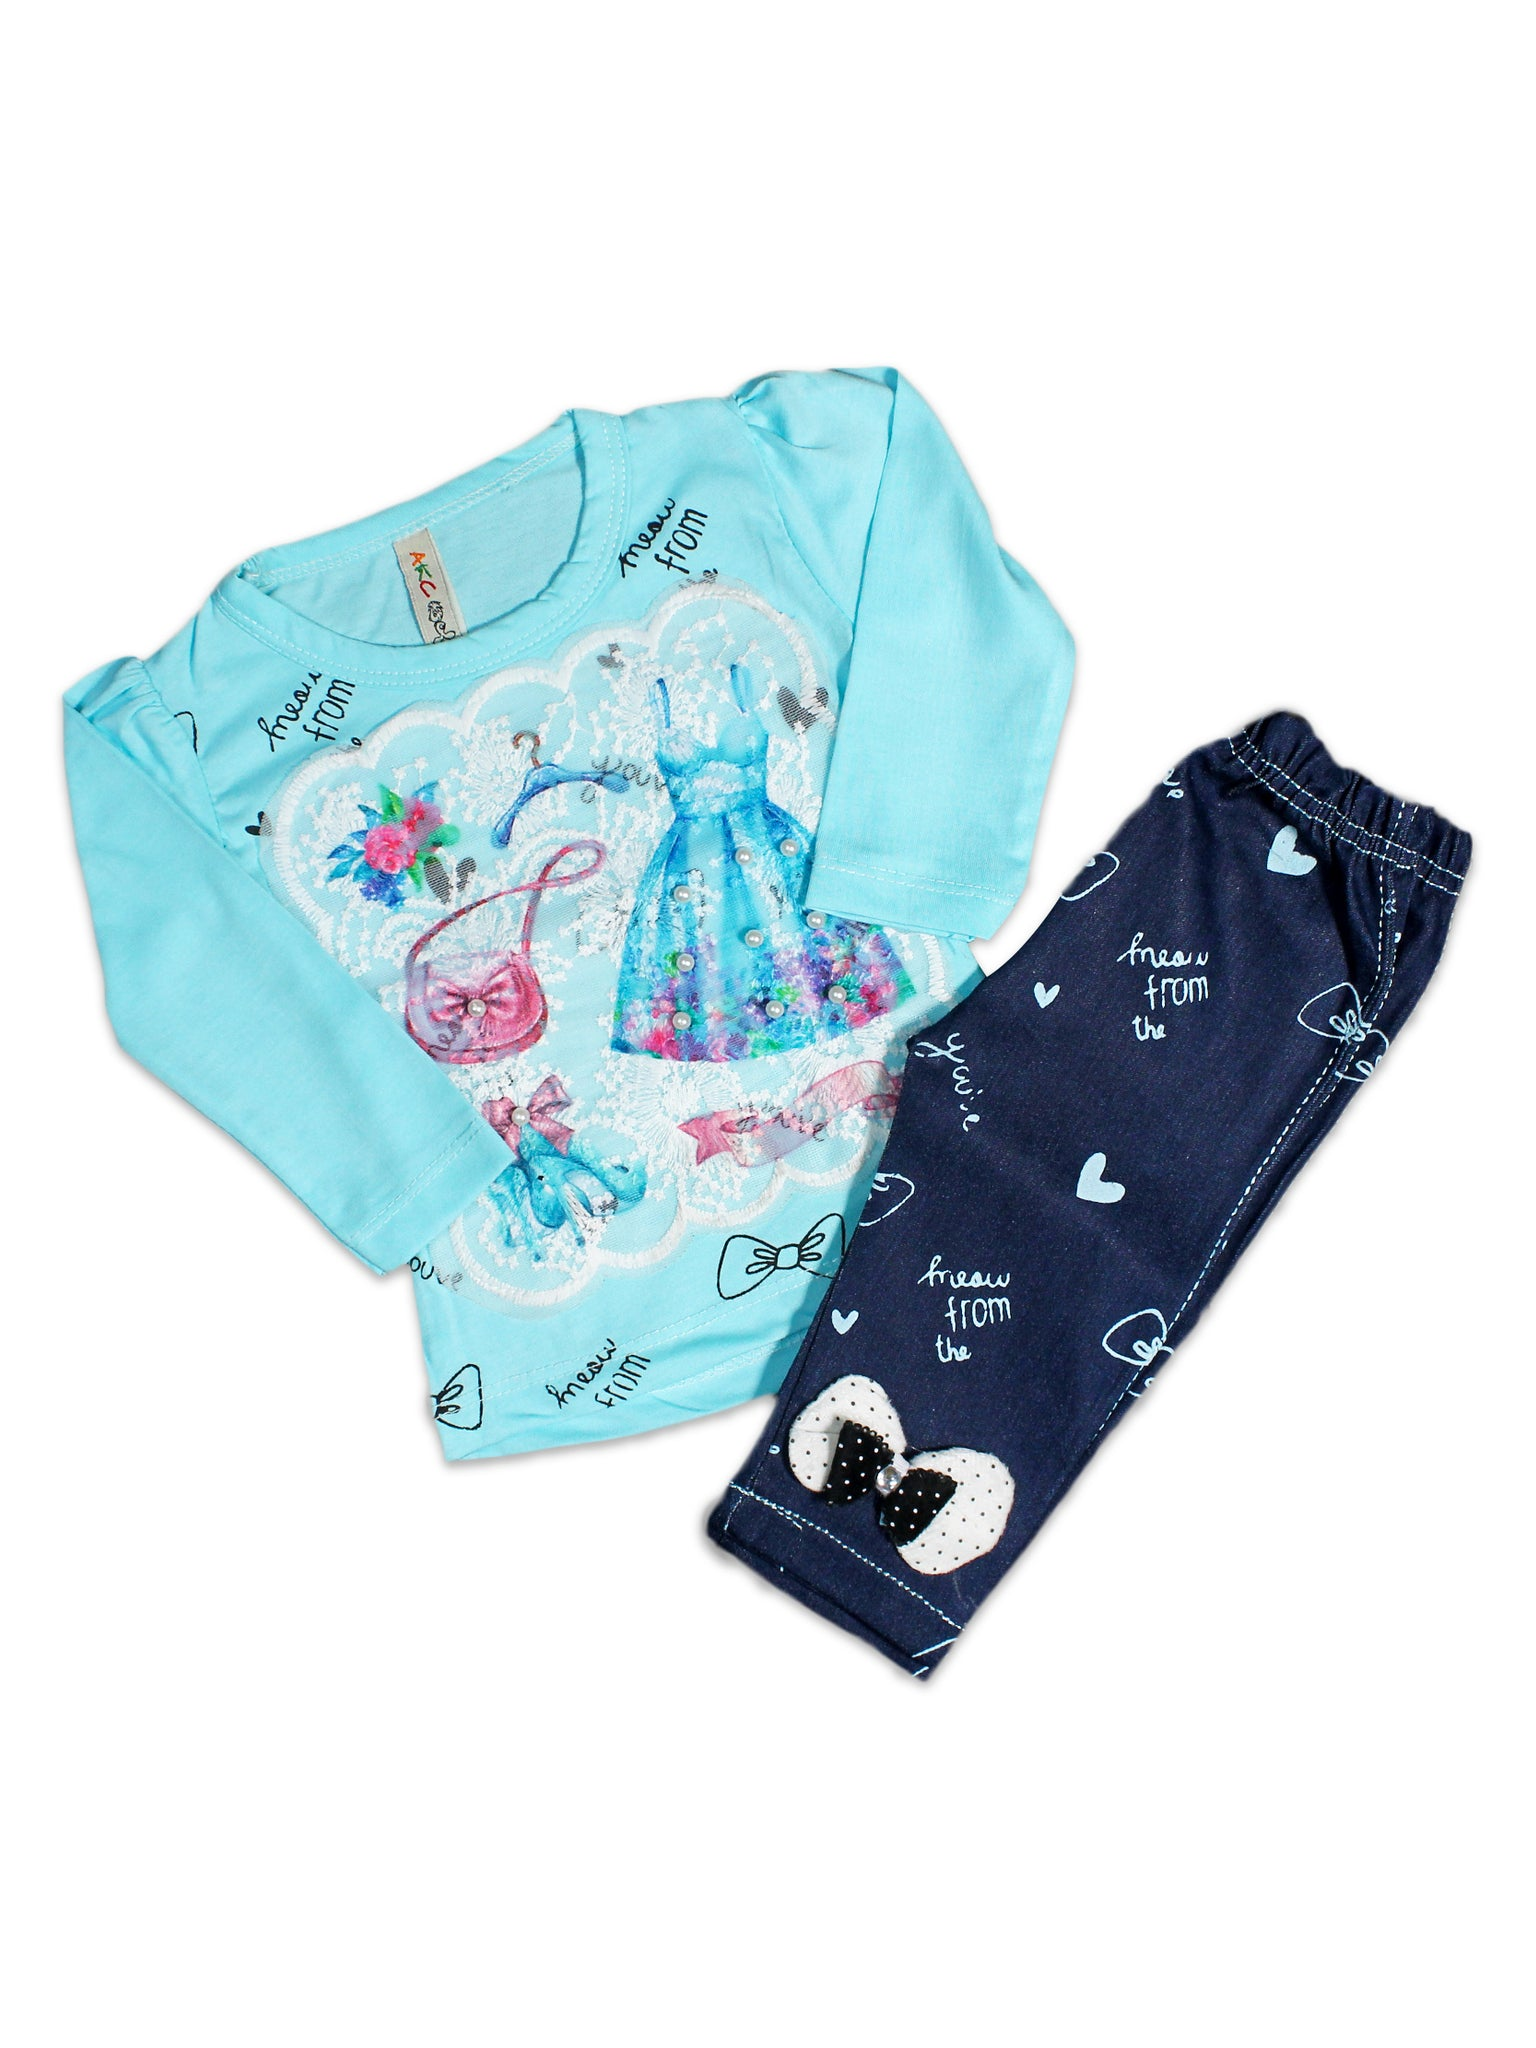 AKC New born Baby Suit 6Mth - 9Mth Dress Blue